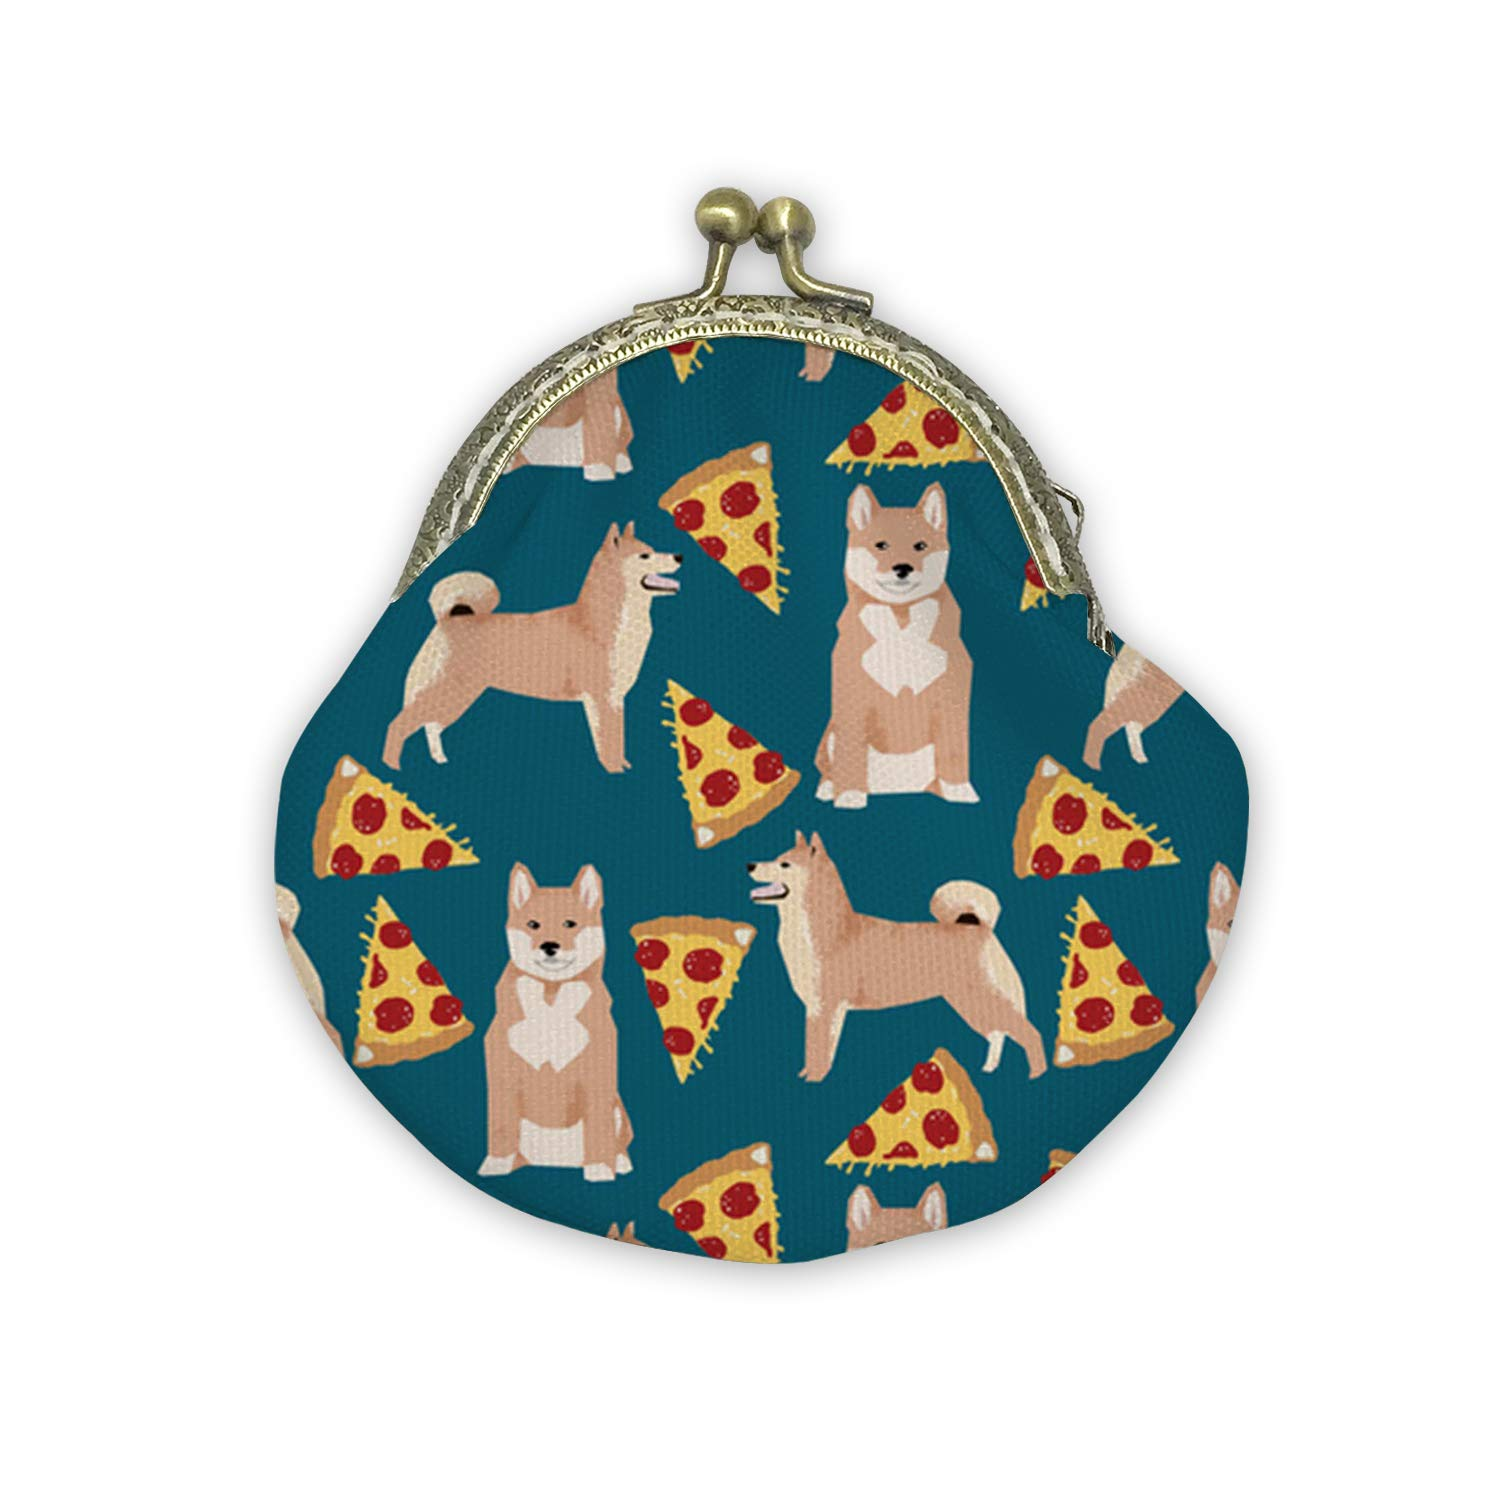 Shiba Inu and Sushi Mouth Gold Bag Canvas Coin Purse Cash Bag Small Purse Wallets Mini Money Bag Change Pouch Key Holder Double Sides Printing